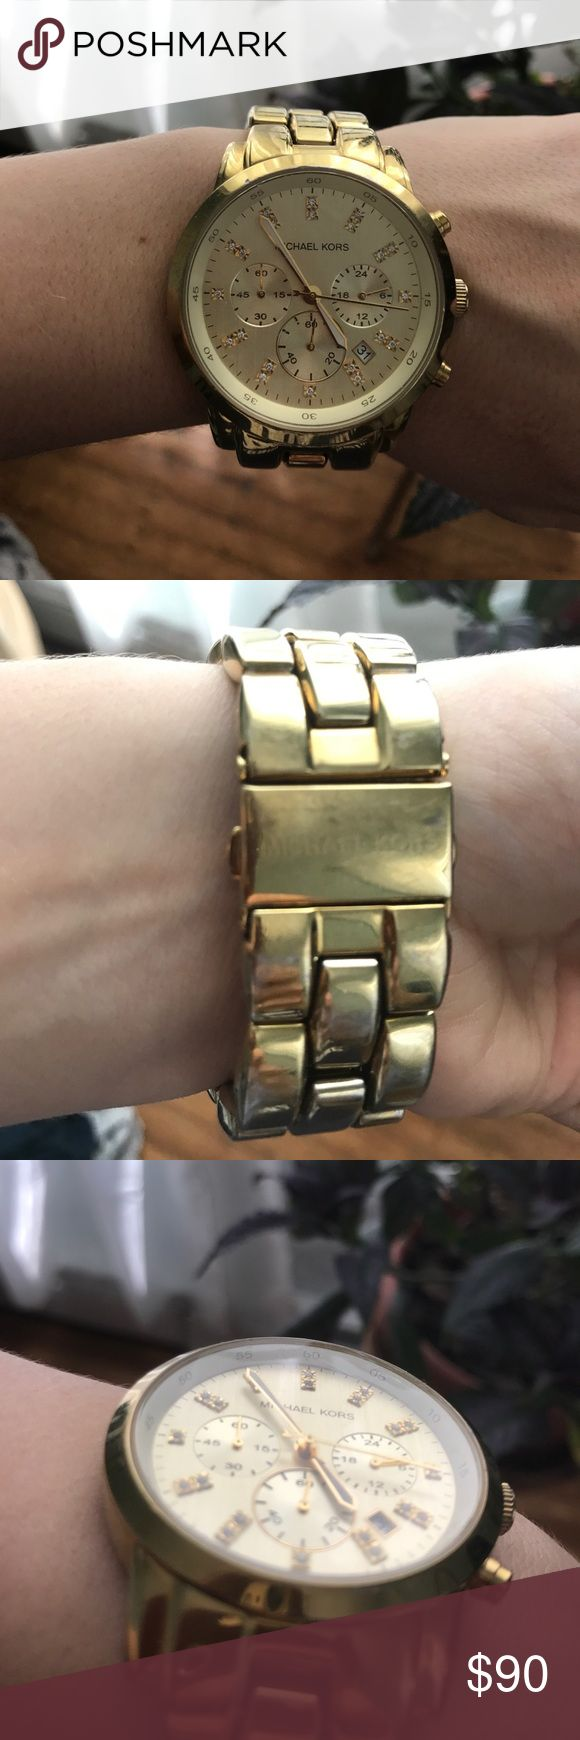 Michael Kors Big Face Boyfriend Watch Michael Kors Boyfriend Watch, some wear on the inside of the wrist but in very good condition besides that. I do not have the extra links. Michael Kors Jewelry